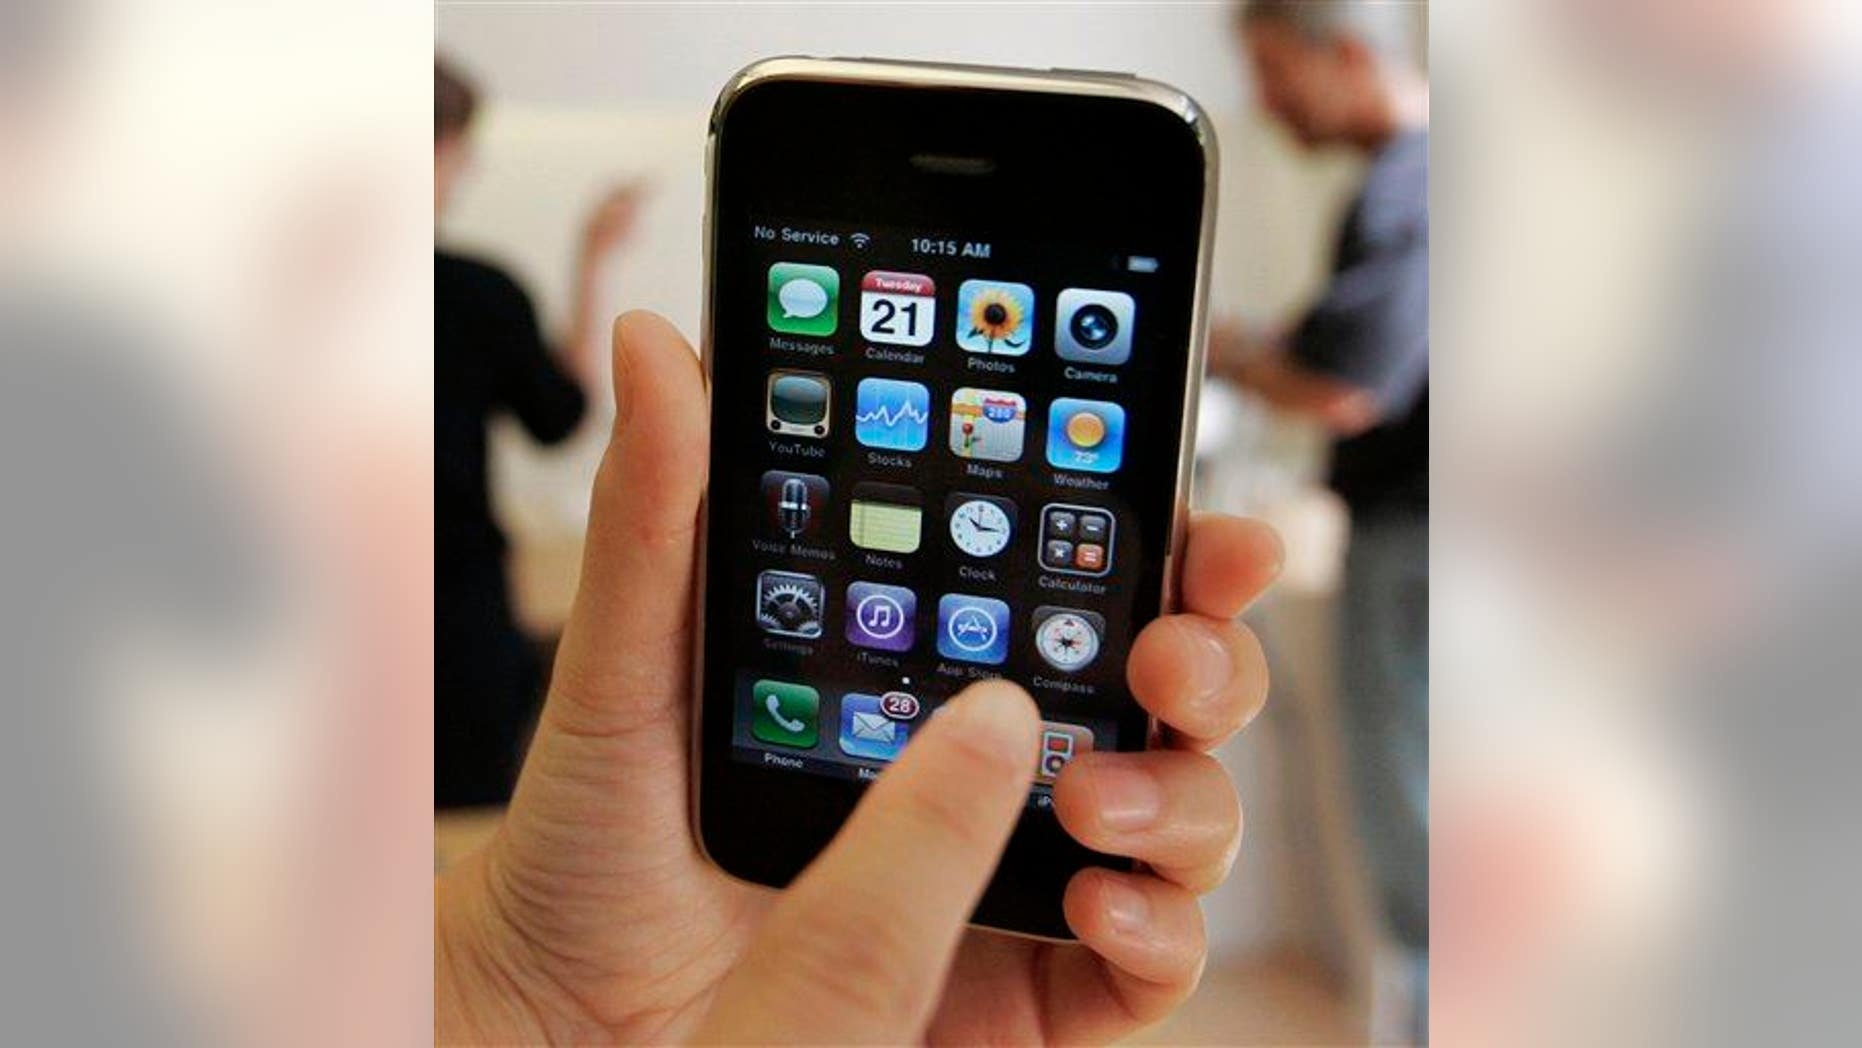 In this July 21, 2009, file photo, a customer displays an Apple iPhone 3GS at an Apple store in Palo Alto, Calif.